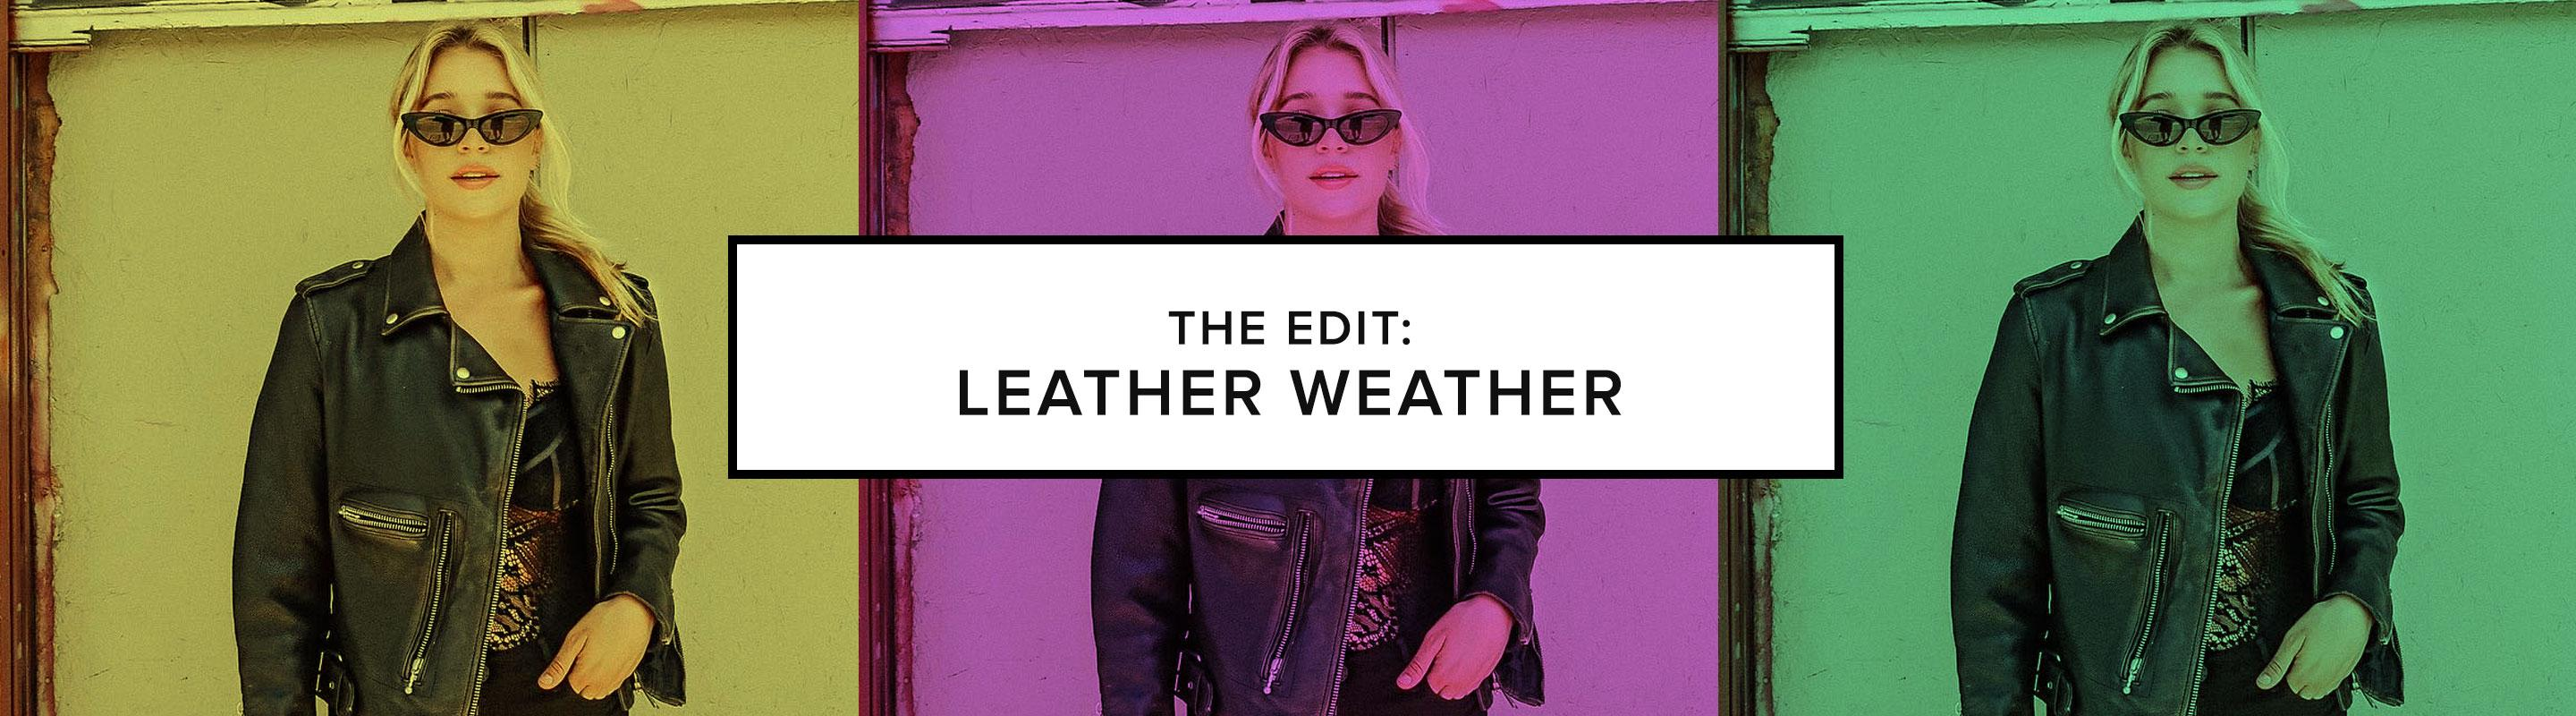 The Edit: Leather Weather